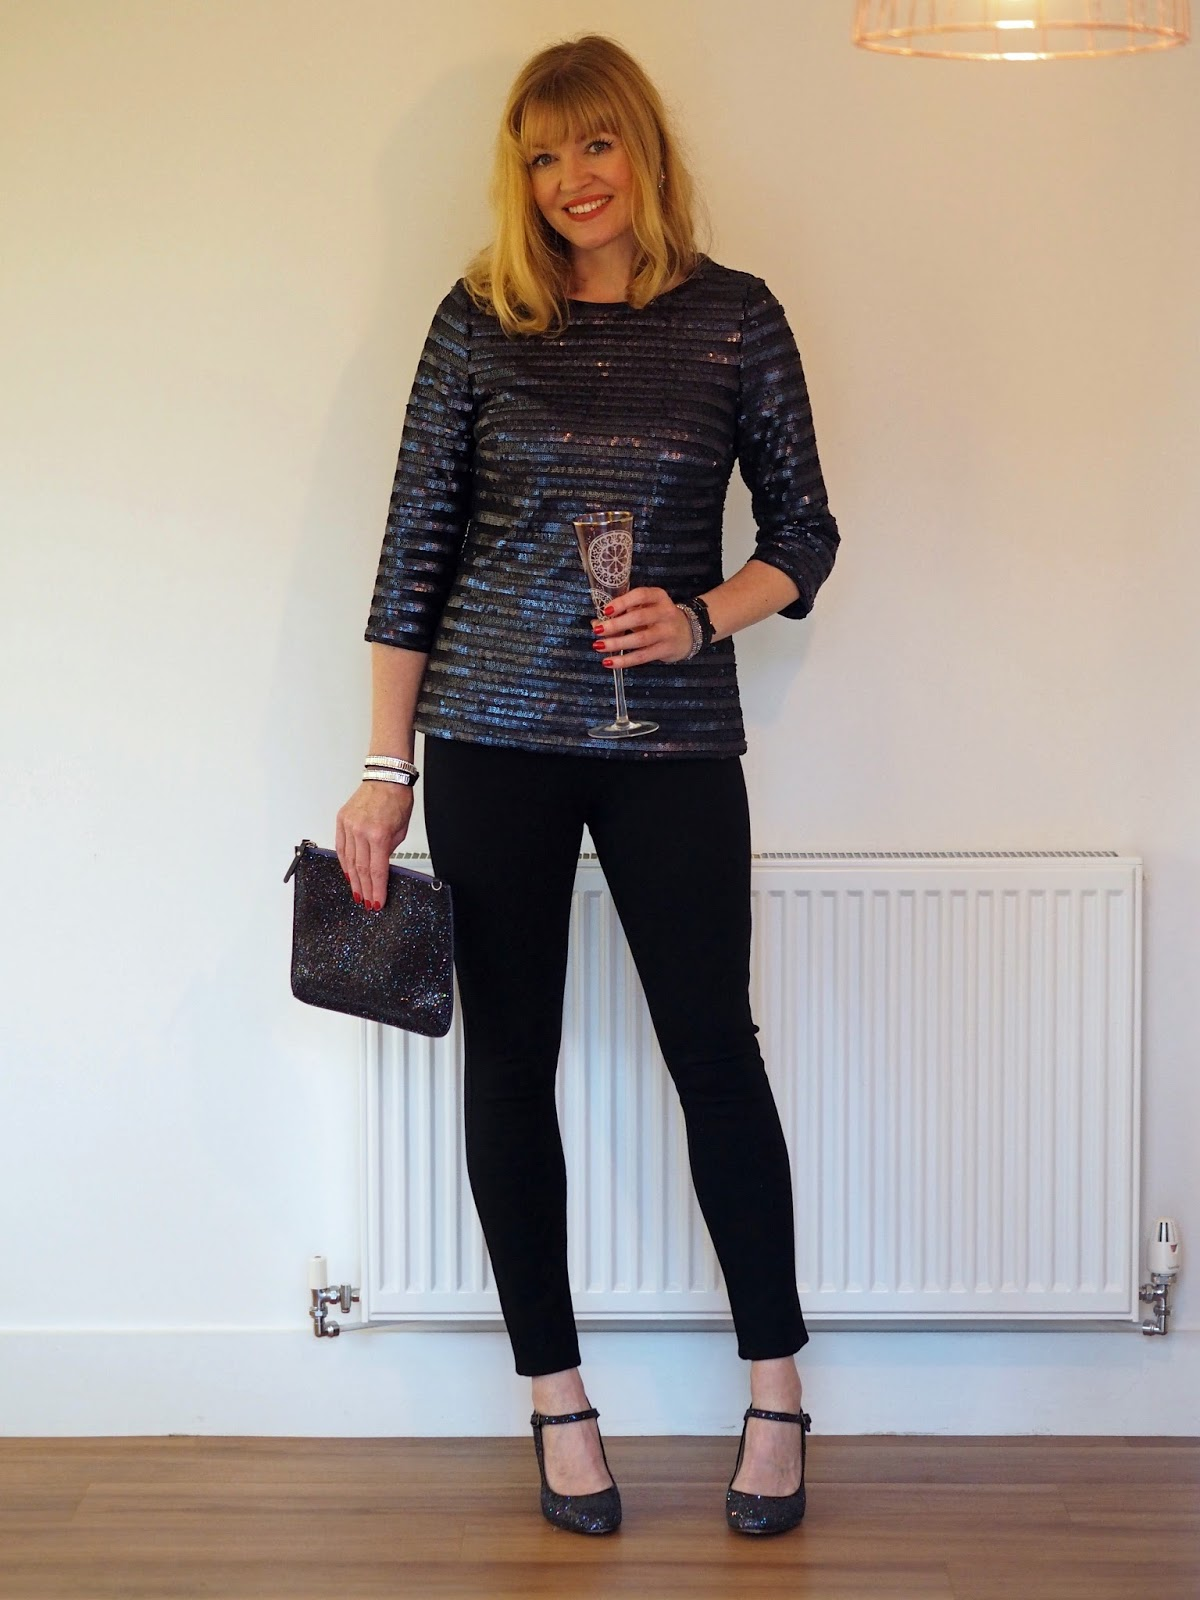 Black and navy sequin top, black stretch trousers, glitter shoes, Christmas outfit, over 40